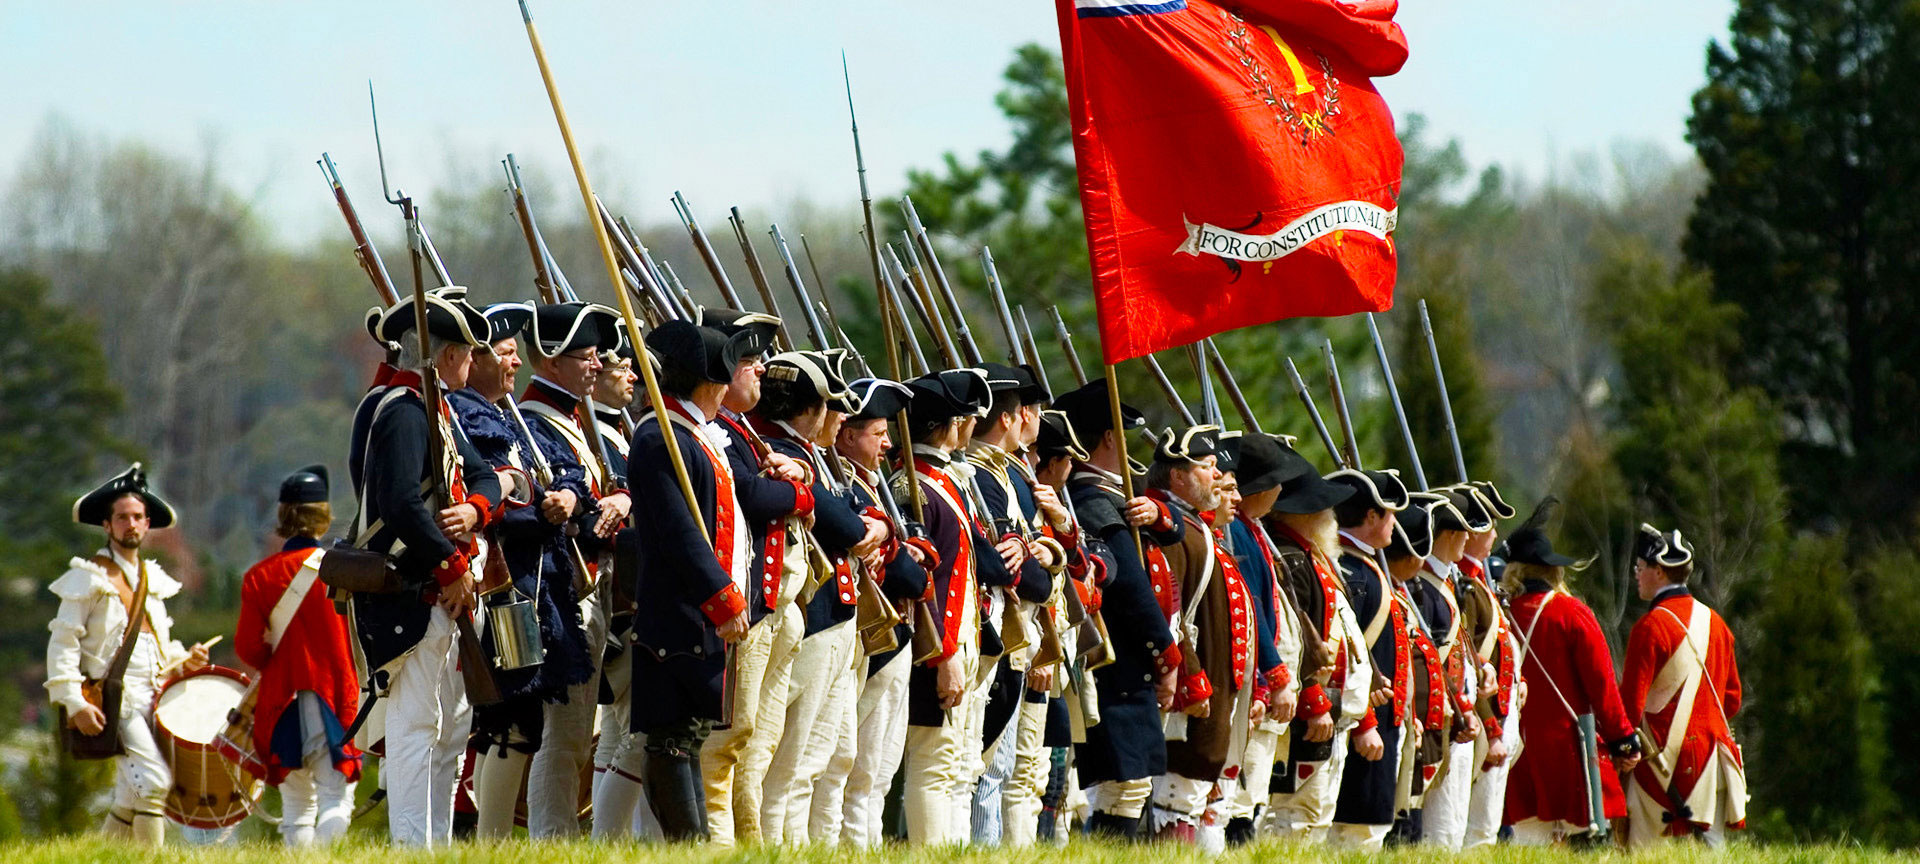 Battle of Guilford Courthouse | Greensboro, NC